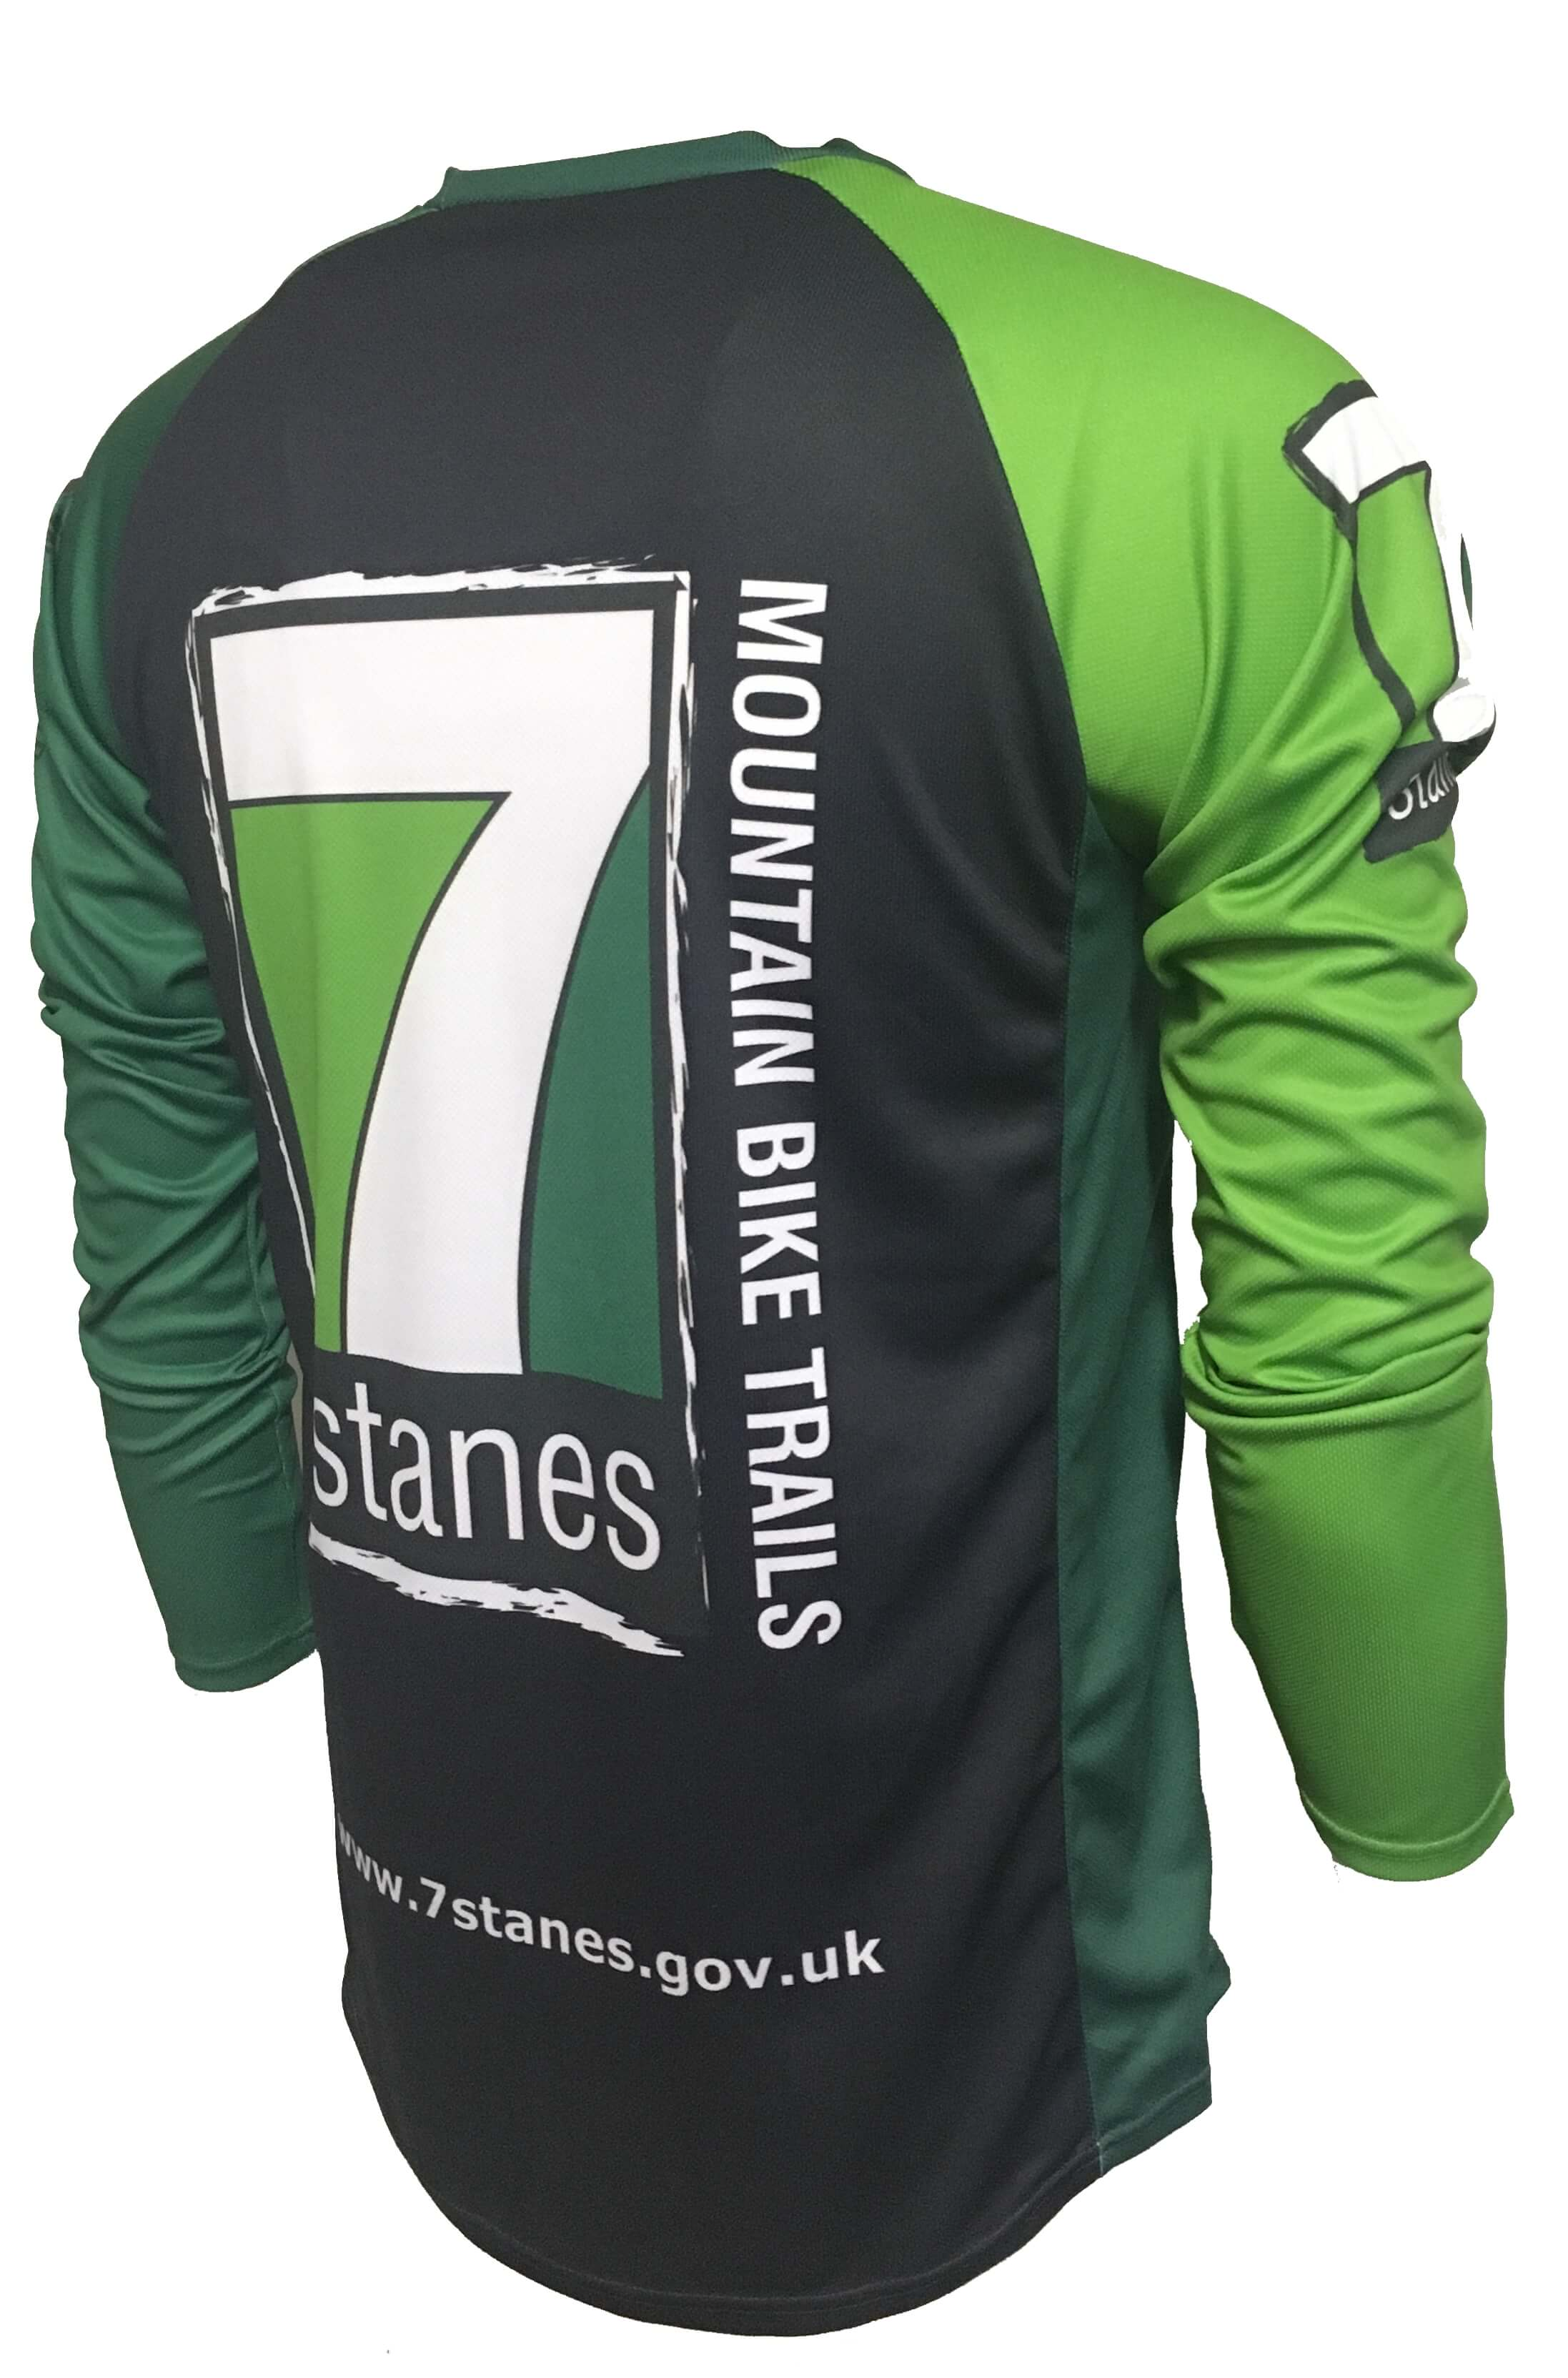 7stanes Enduro Cycling Jersey Back